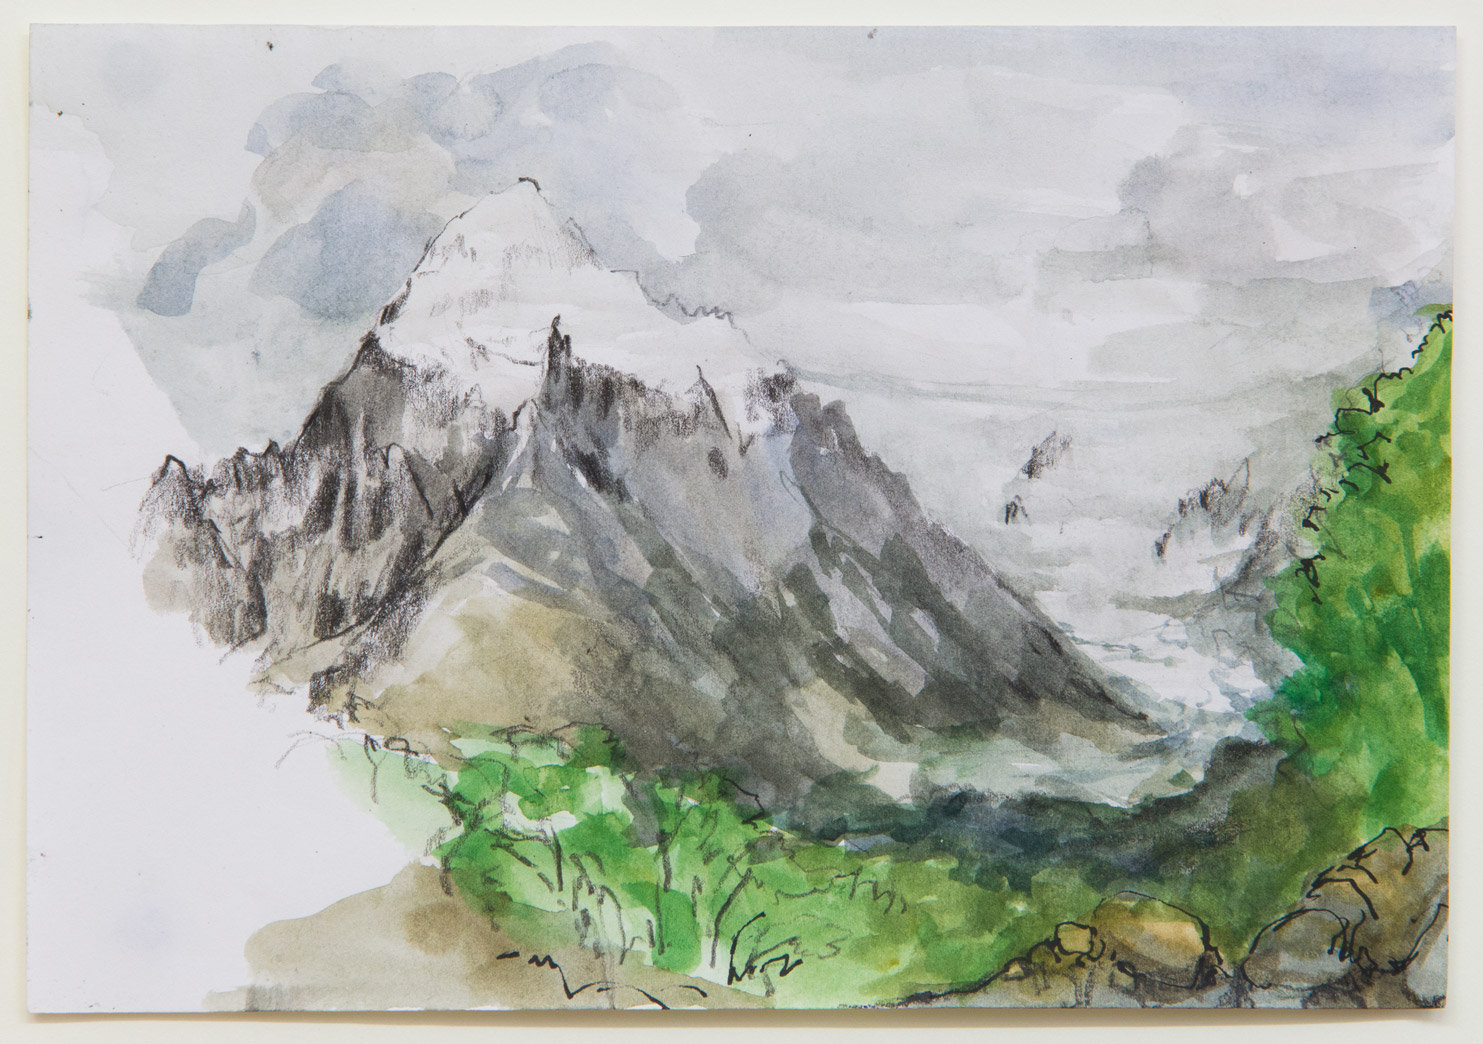 Cerro Torre; 21 x 15 cm; watercolour, ink and pencil on paper; 2018